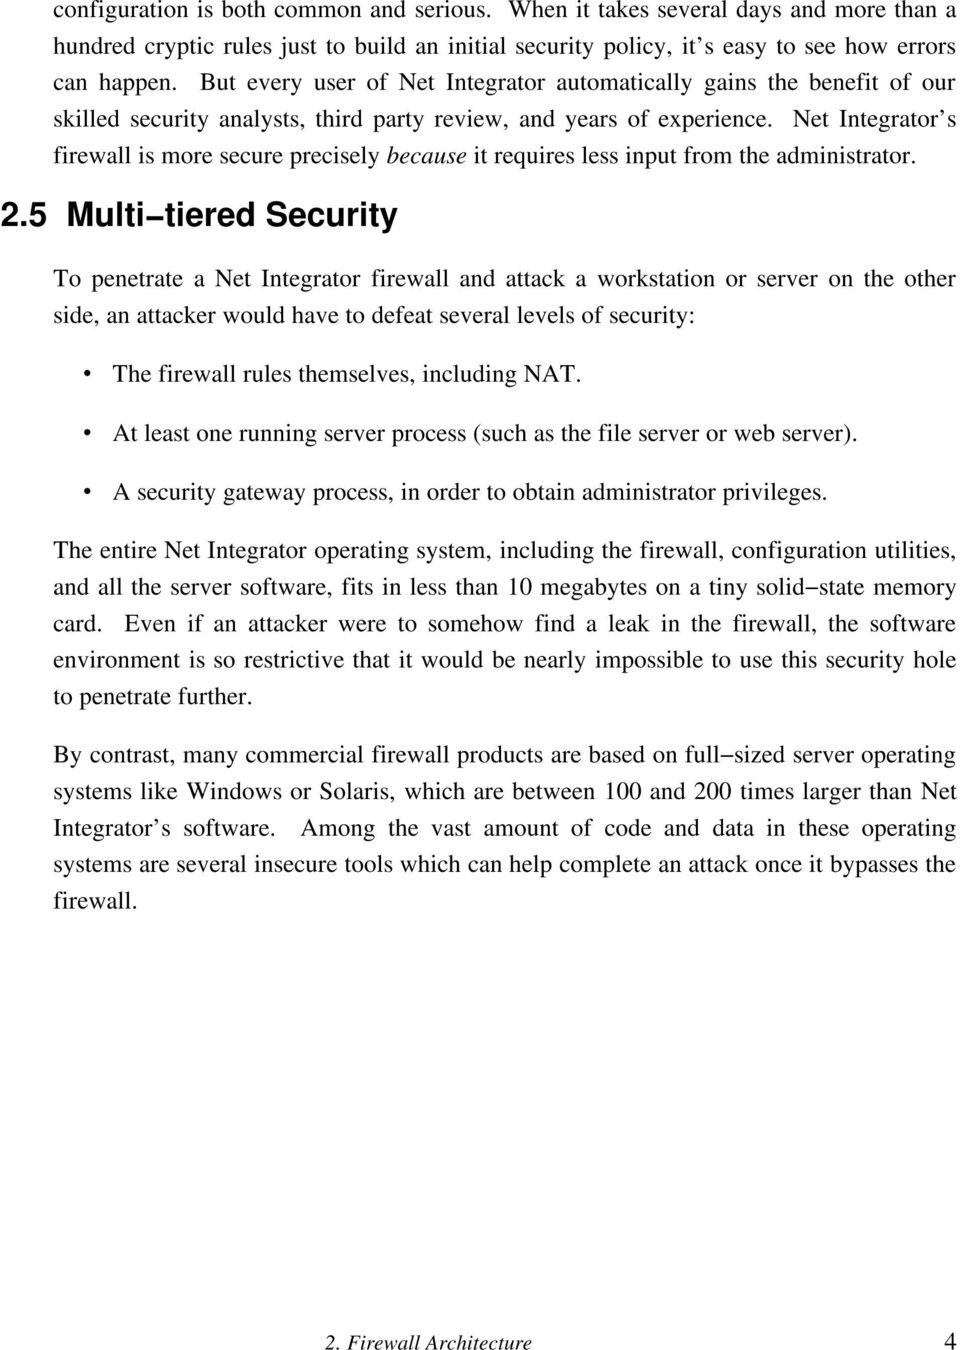 Net Integrator s firewall is more secure precisely because it requires less input from the administrator. 2.